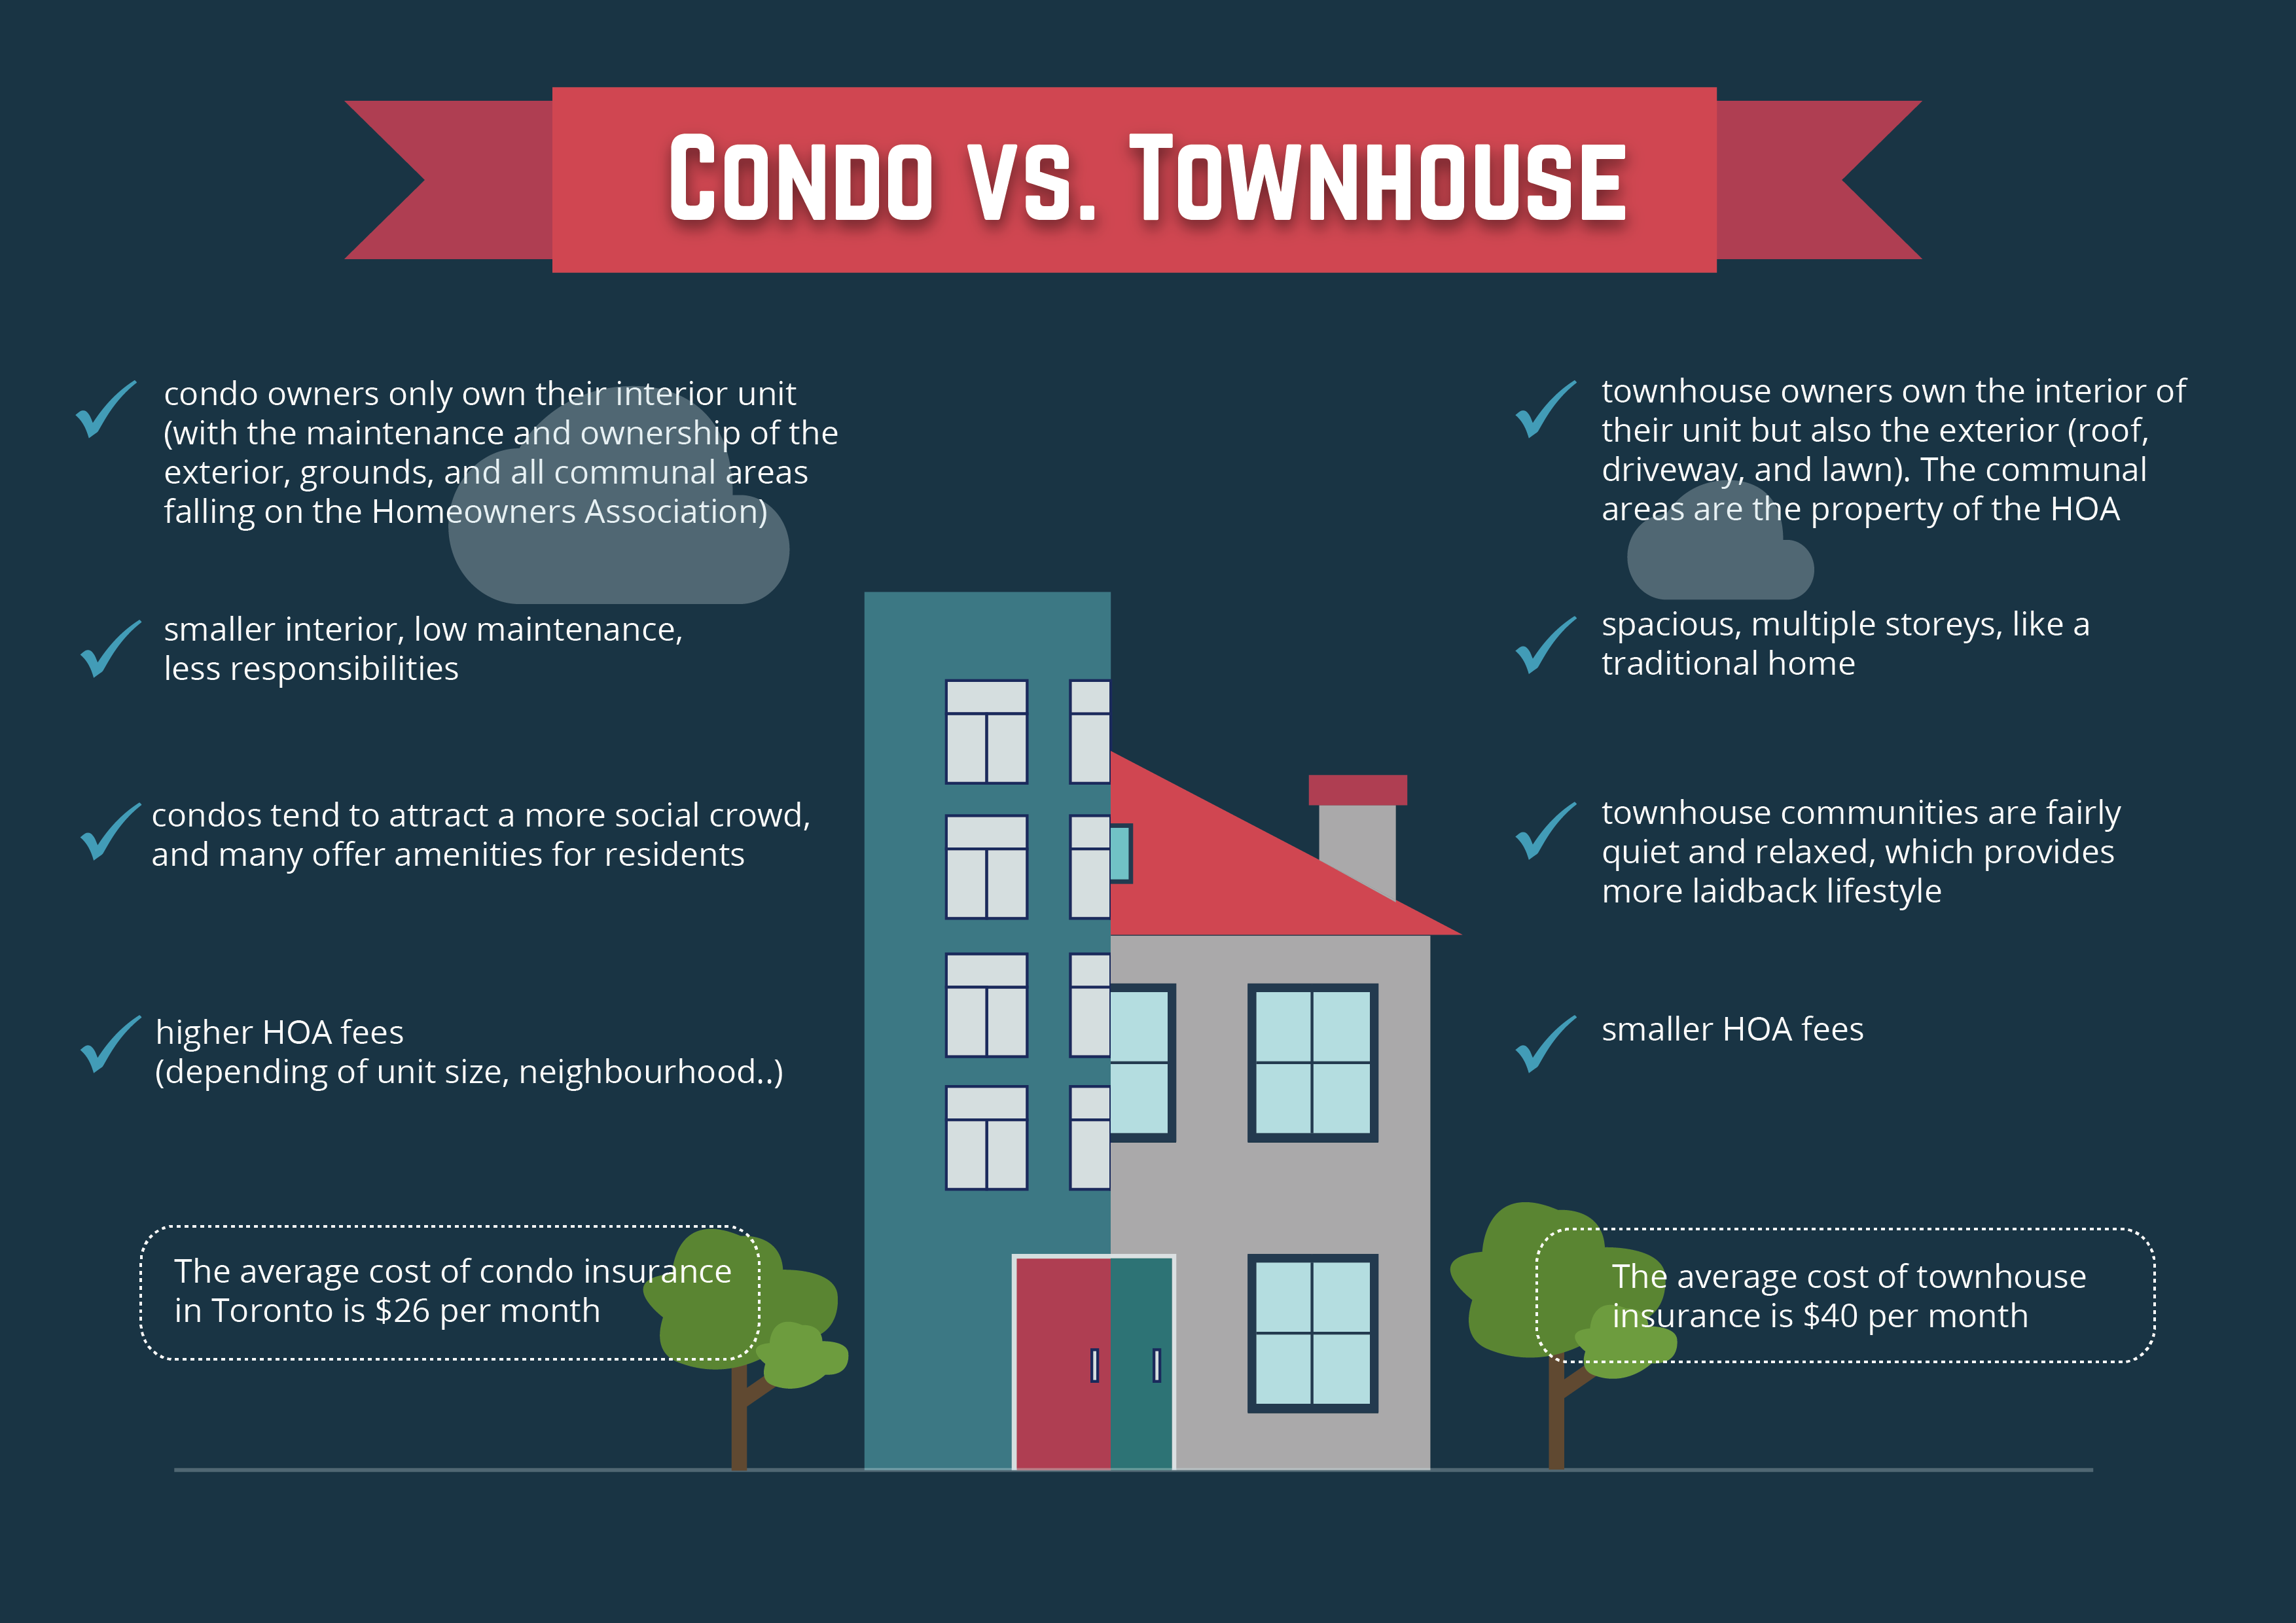 What To Buy Differences Between Condos And Townhouses Townhouse